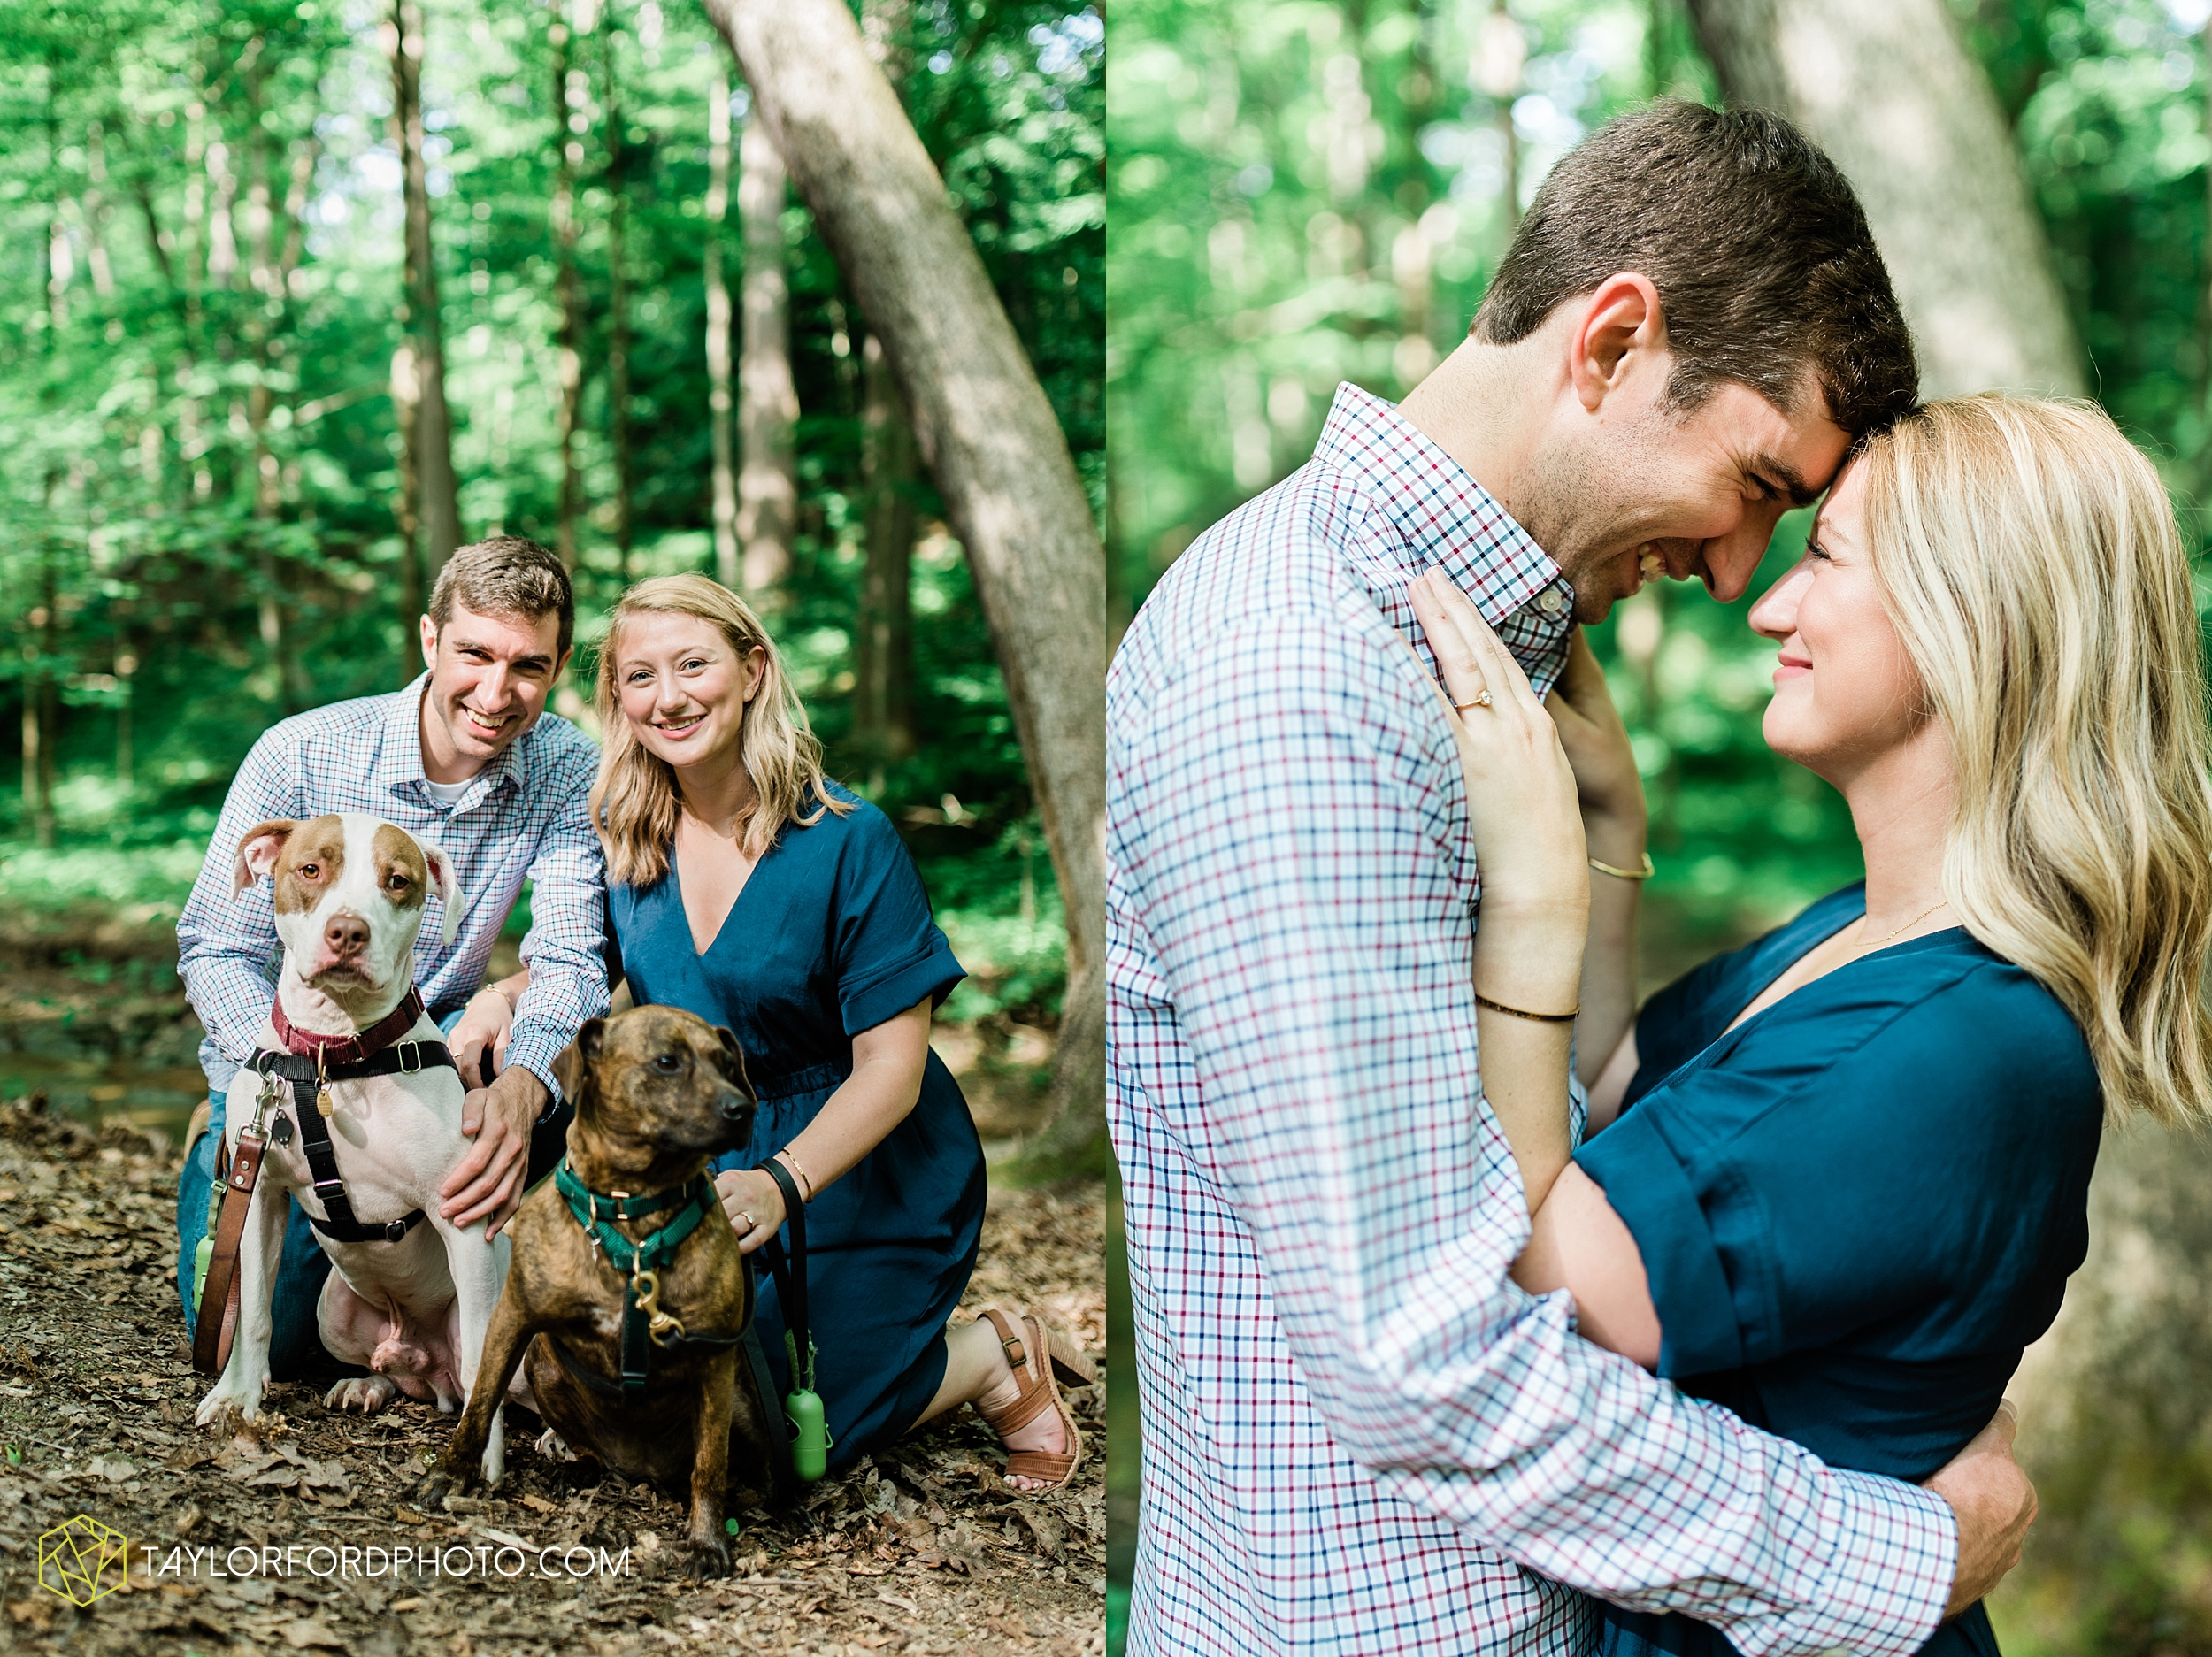 margo-evan-kohler-south-chagrin-reservation-chagrin-falls-cleveland-ohio-engagement-wedding-photographer-Taylor-Ford-Photography_8162.jpg